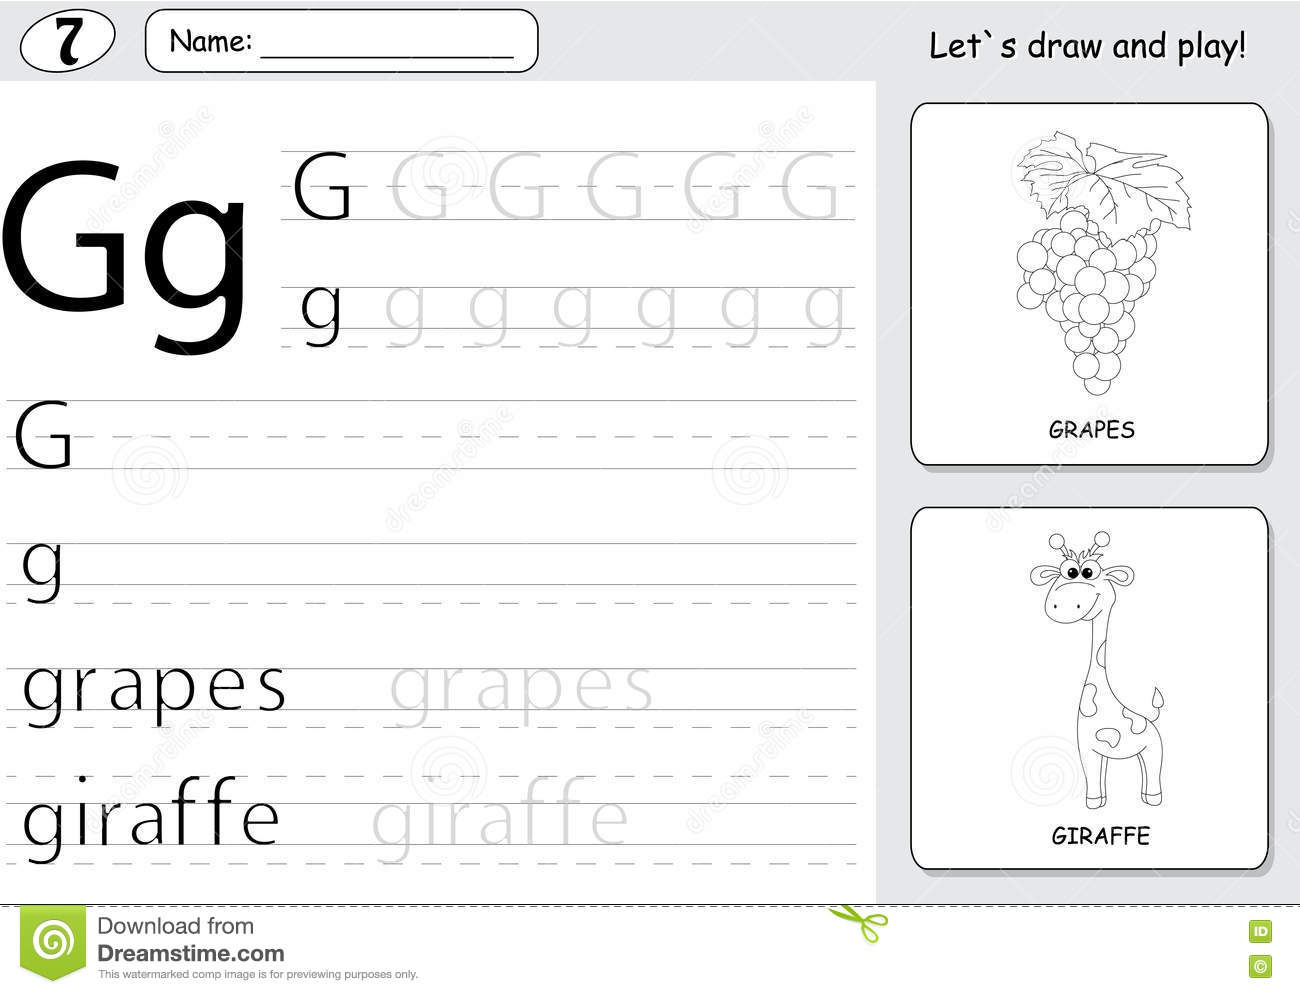 Giraffe Letter Worksheet